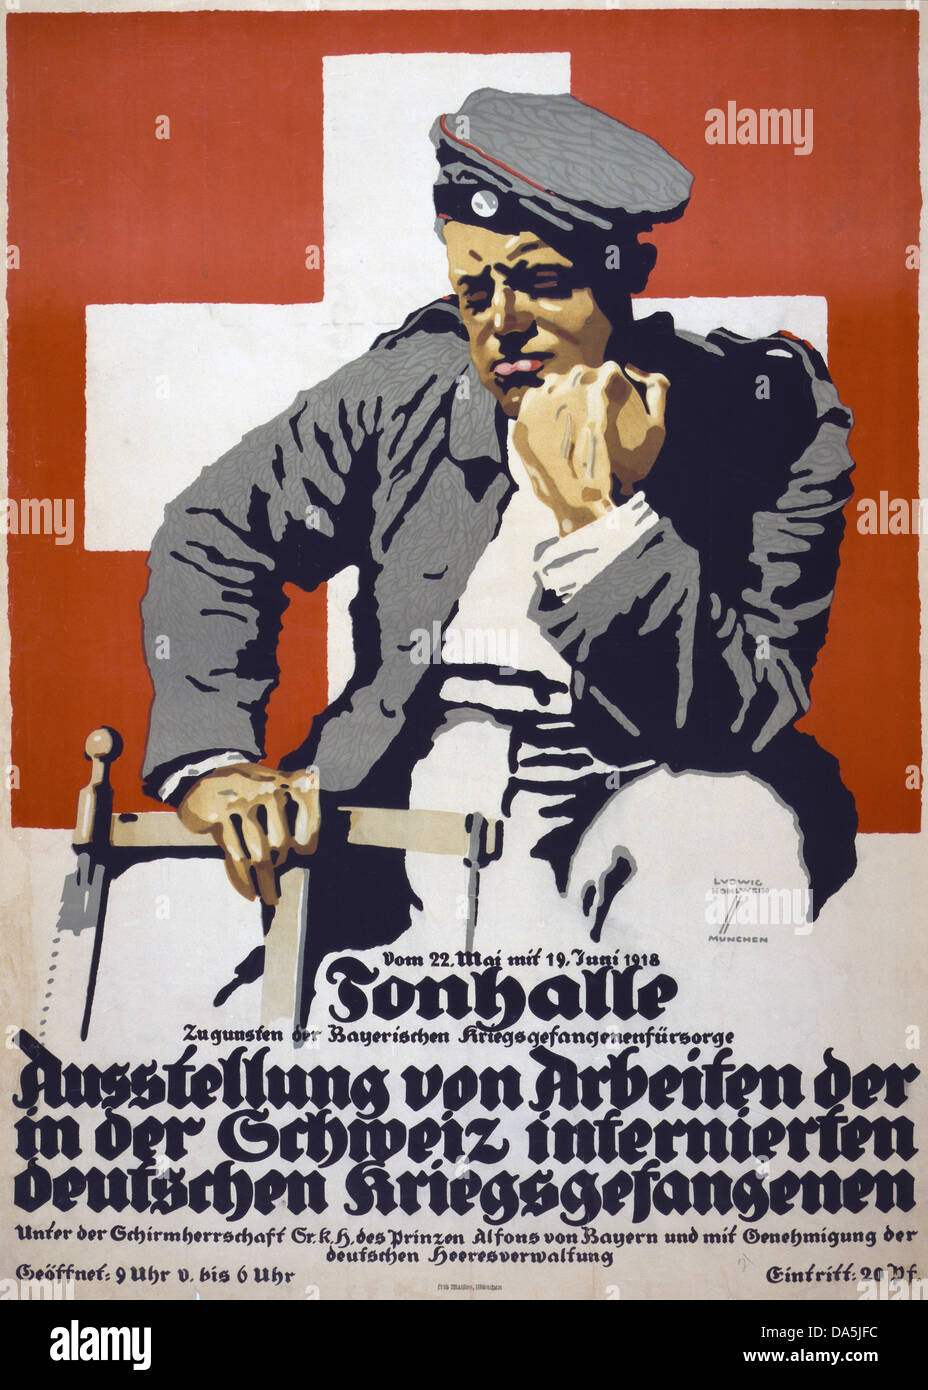 the propaganda of the first world war English propaganda against germany in the first world war adolf hitler, germany's f was impressed by the power of allied propaganda during world war i and believed that it had been a primary cause of the collapse of morale and revolts in the german home front and navy in 1918.